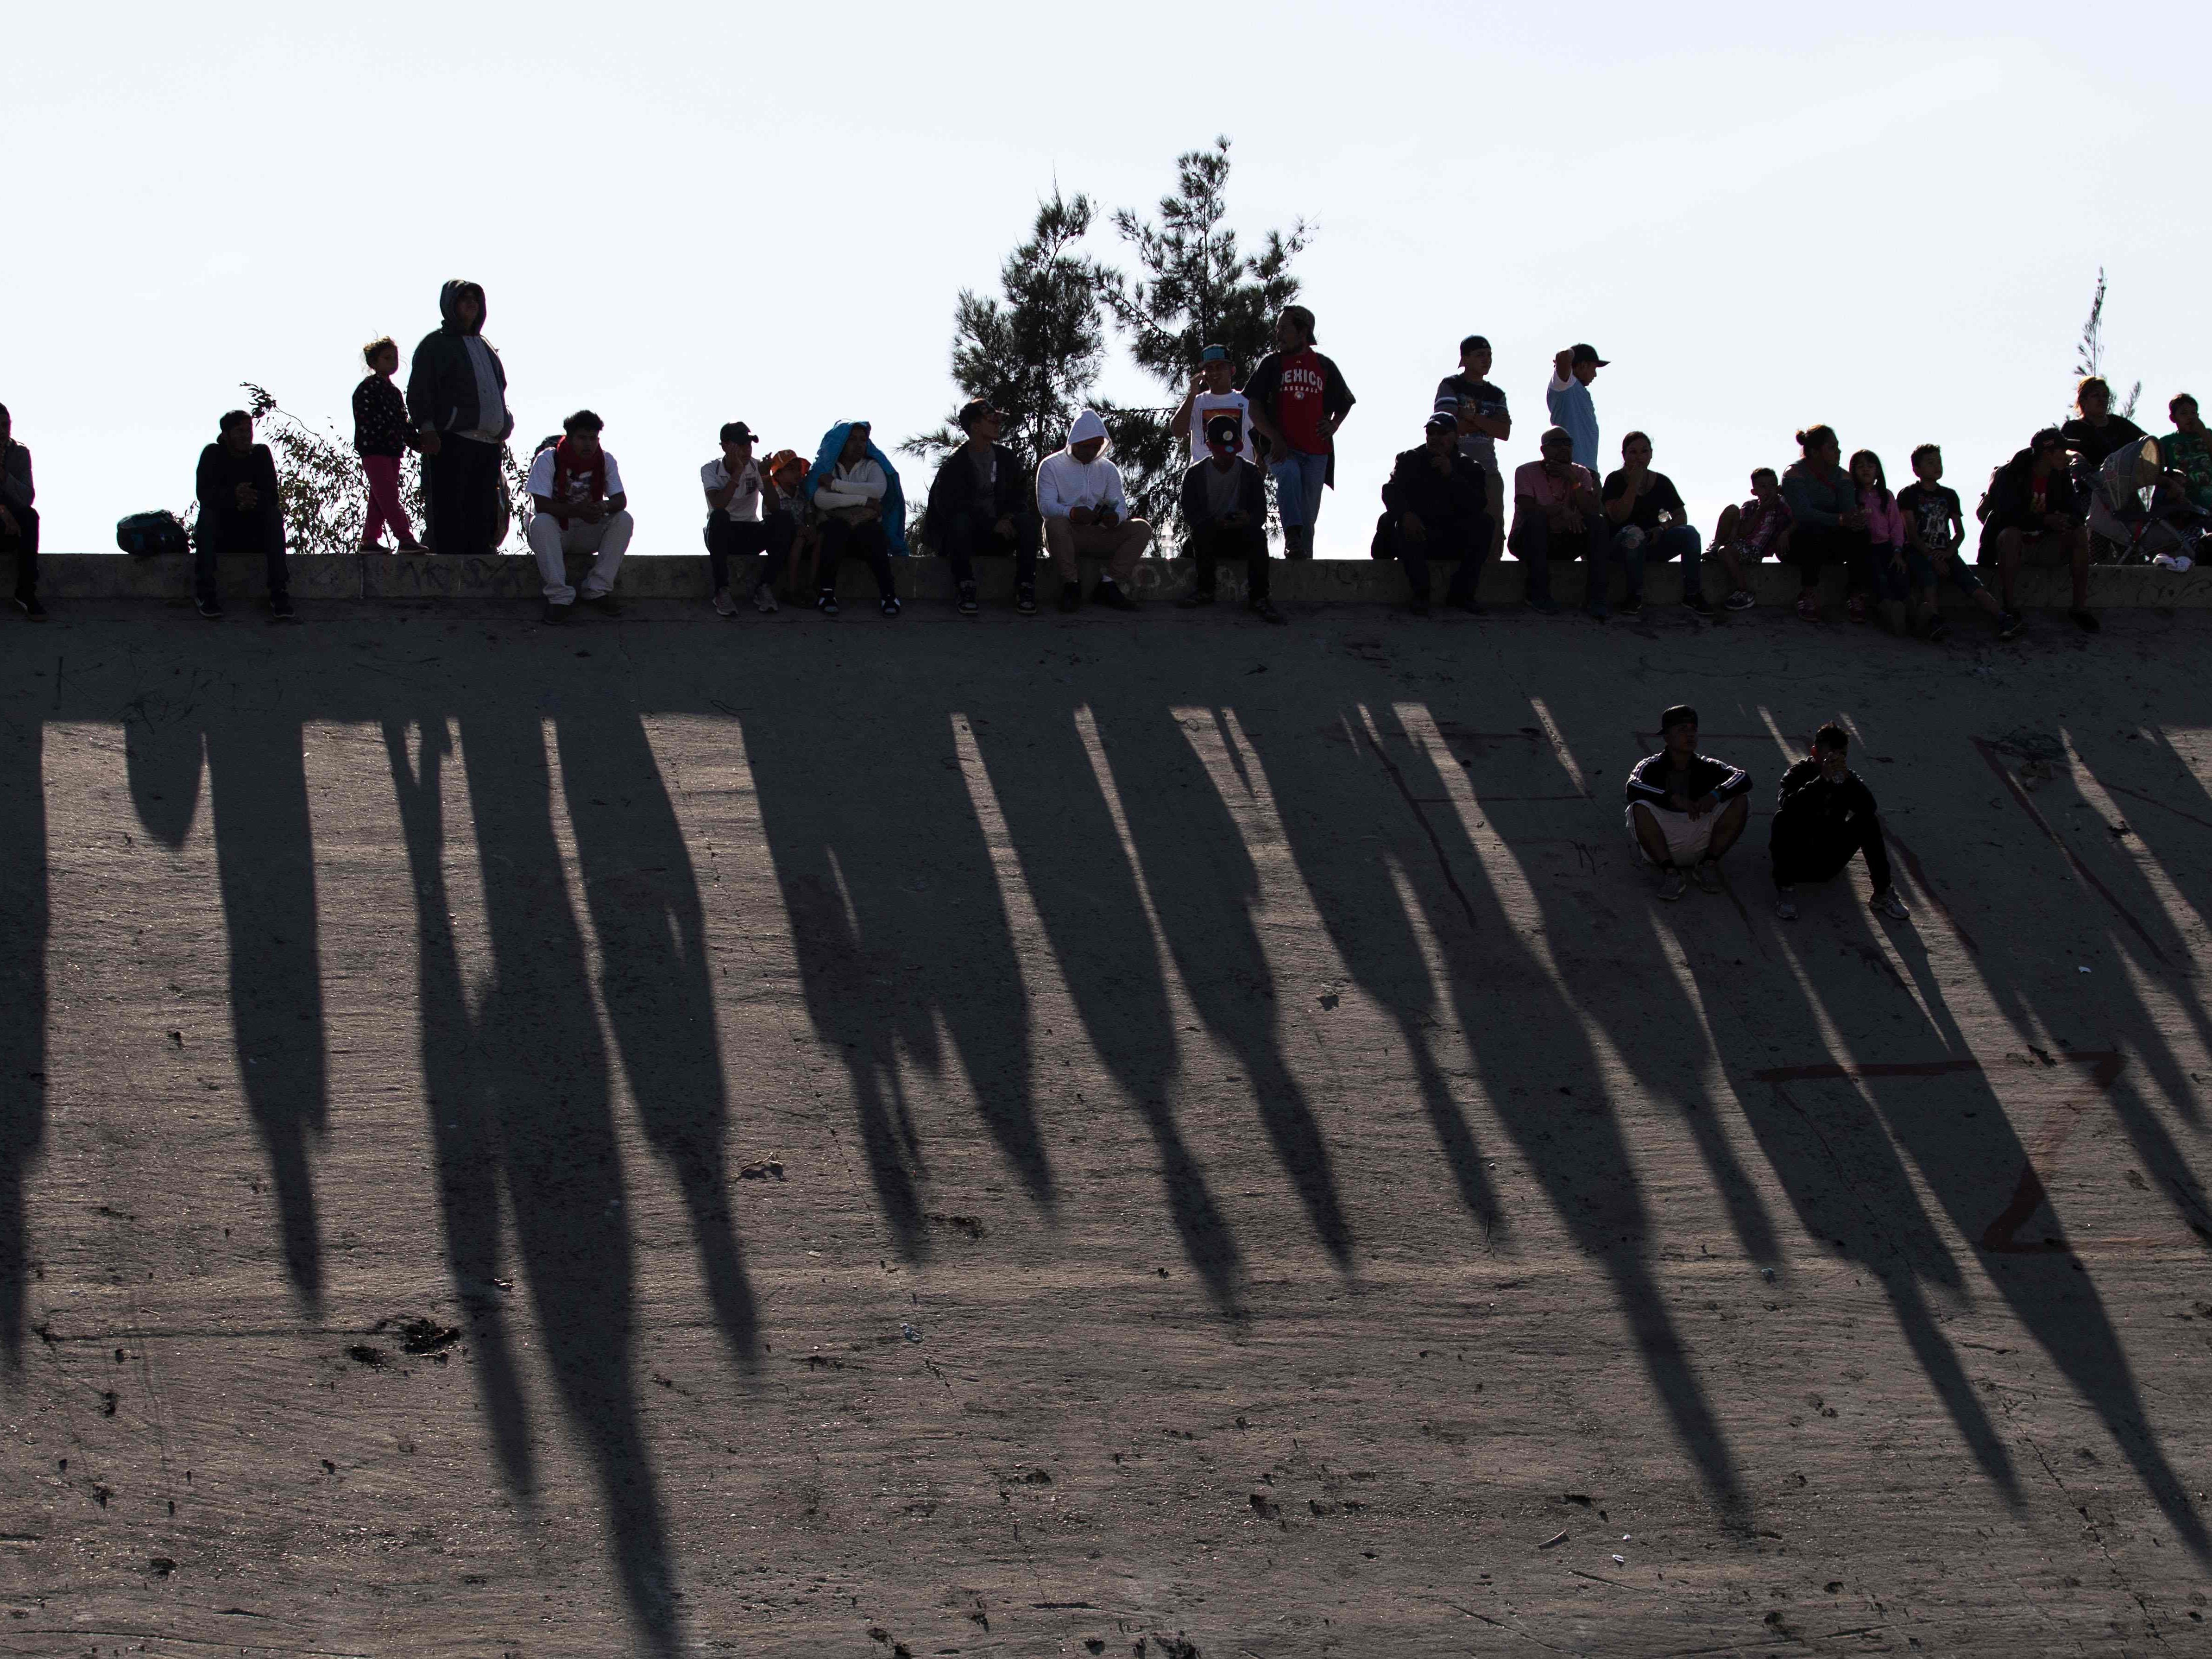 Central American migrants sit along the concrete waterway of the bordering Tijuana River right across the El Chaparral border crossing point in Tijuana, Mexico, on Nov. 25, 2018.